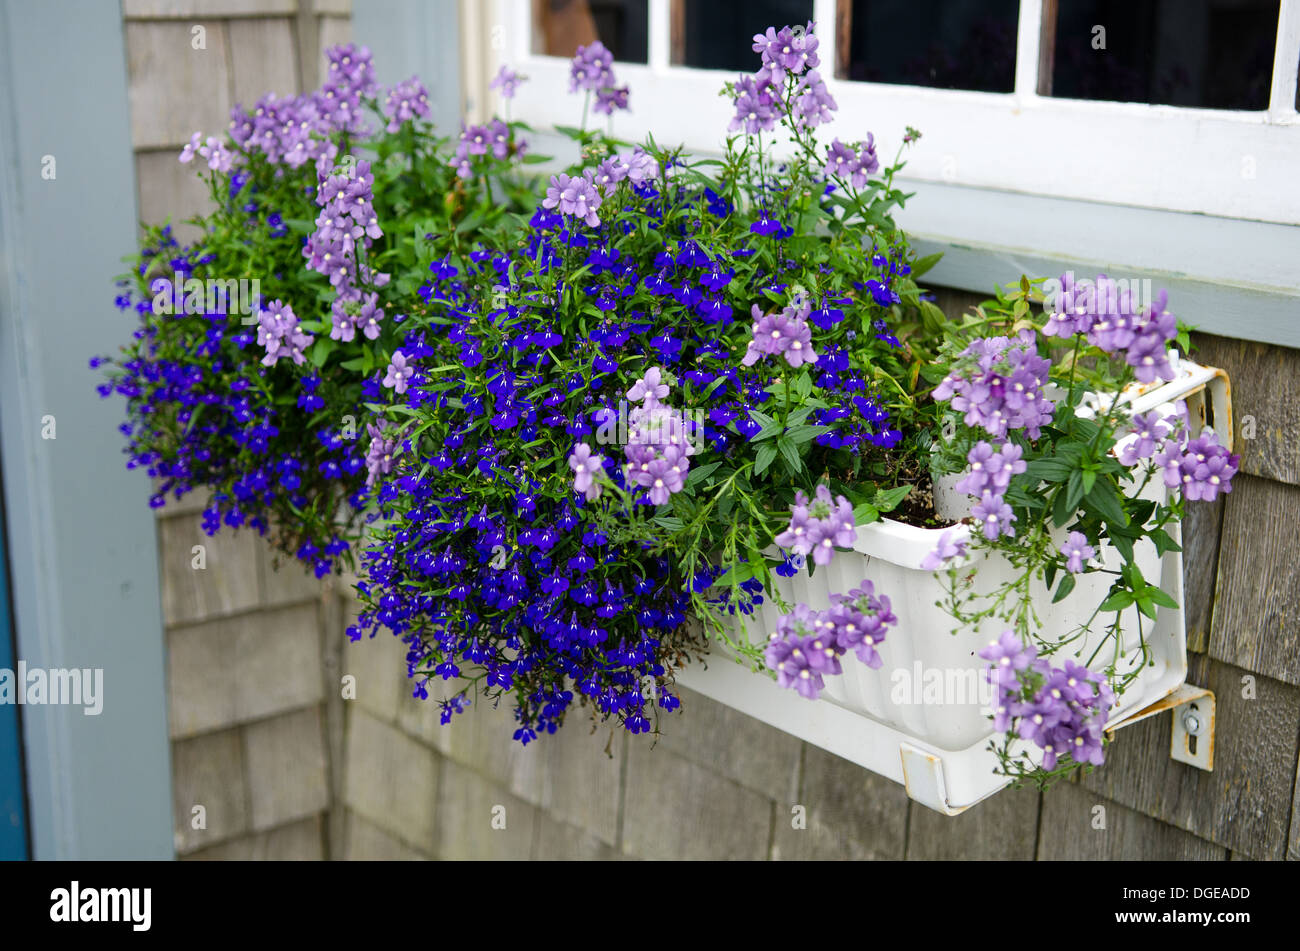 White window box with blue and purple flowers on a grey shingled building. - Stock Image